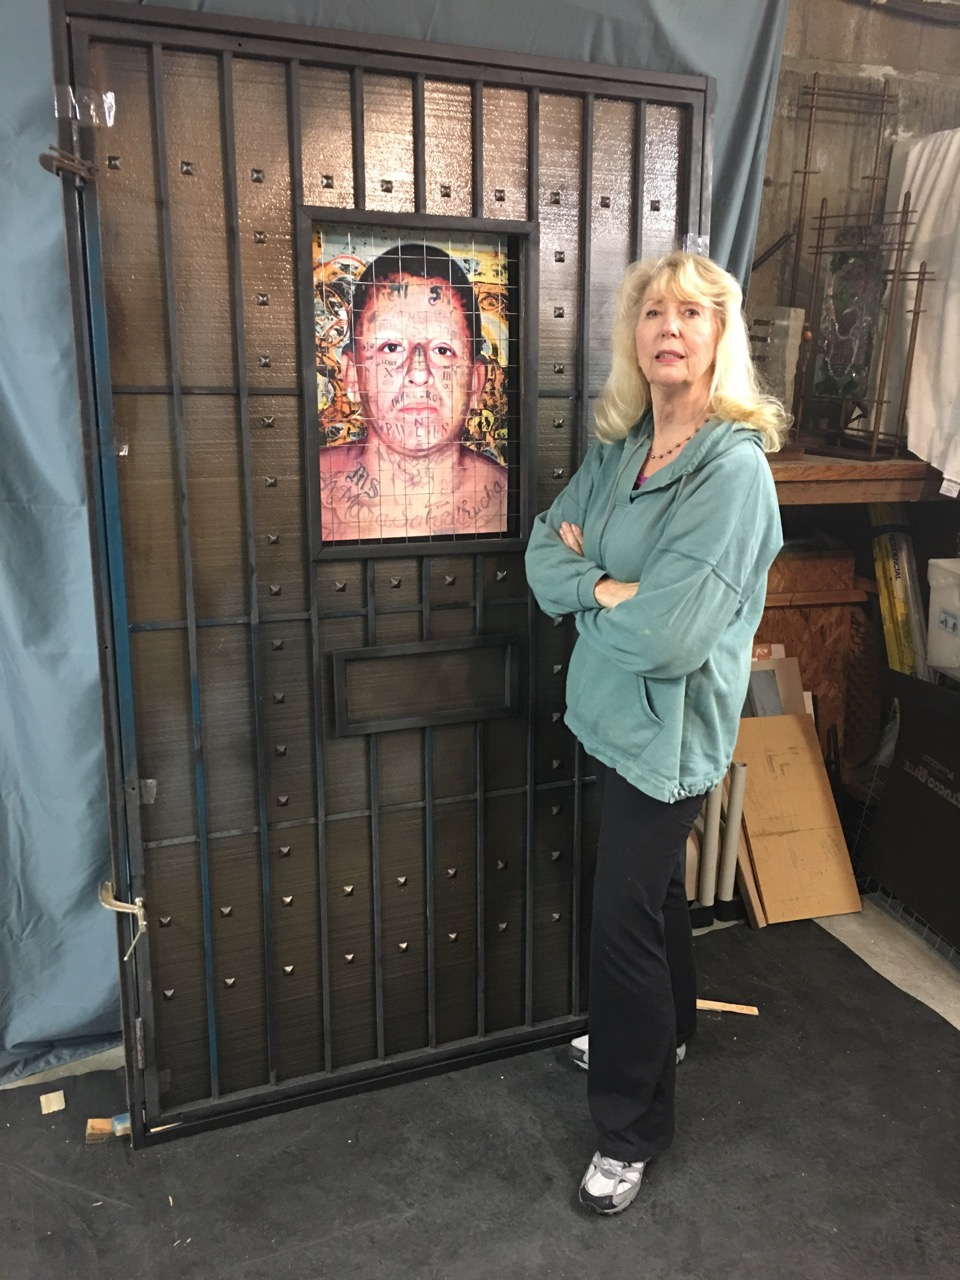 """Work from the Leslie D. Davis and Gregg Stone exhibit """"Incarceration"""" depicts research on prisoners in solitary confinement, many who suffer mental illness after 20 days in isolation. """"I hope to take viewers emotionally out of their comfort zone and use their voices to outlaw this practice,"""" she says."""